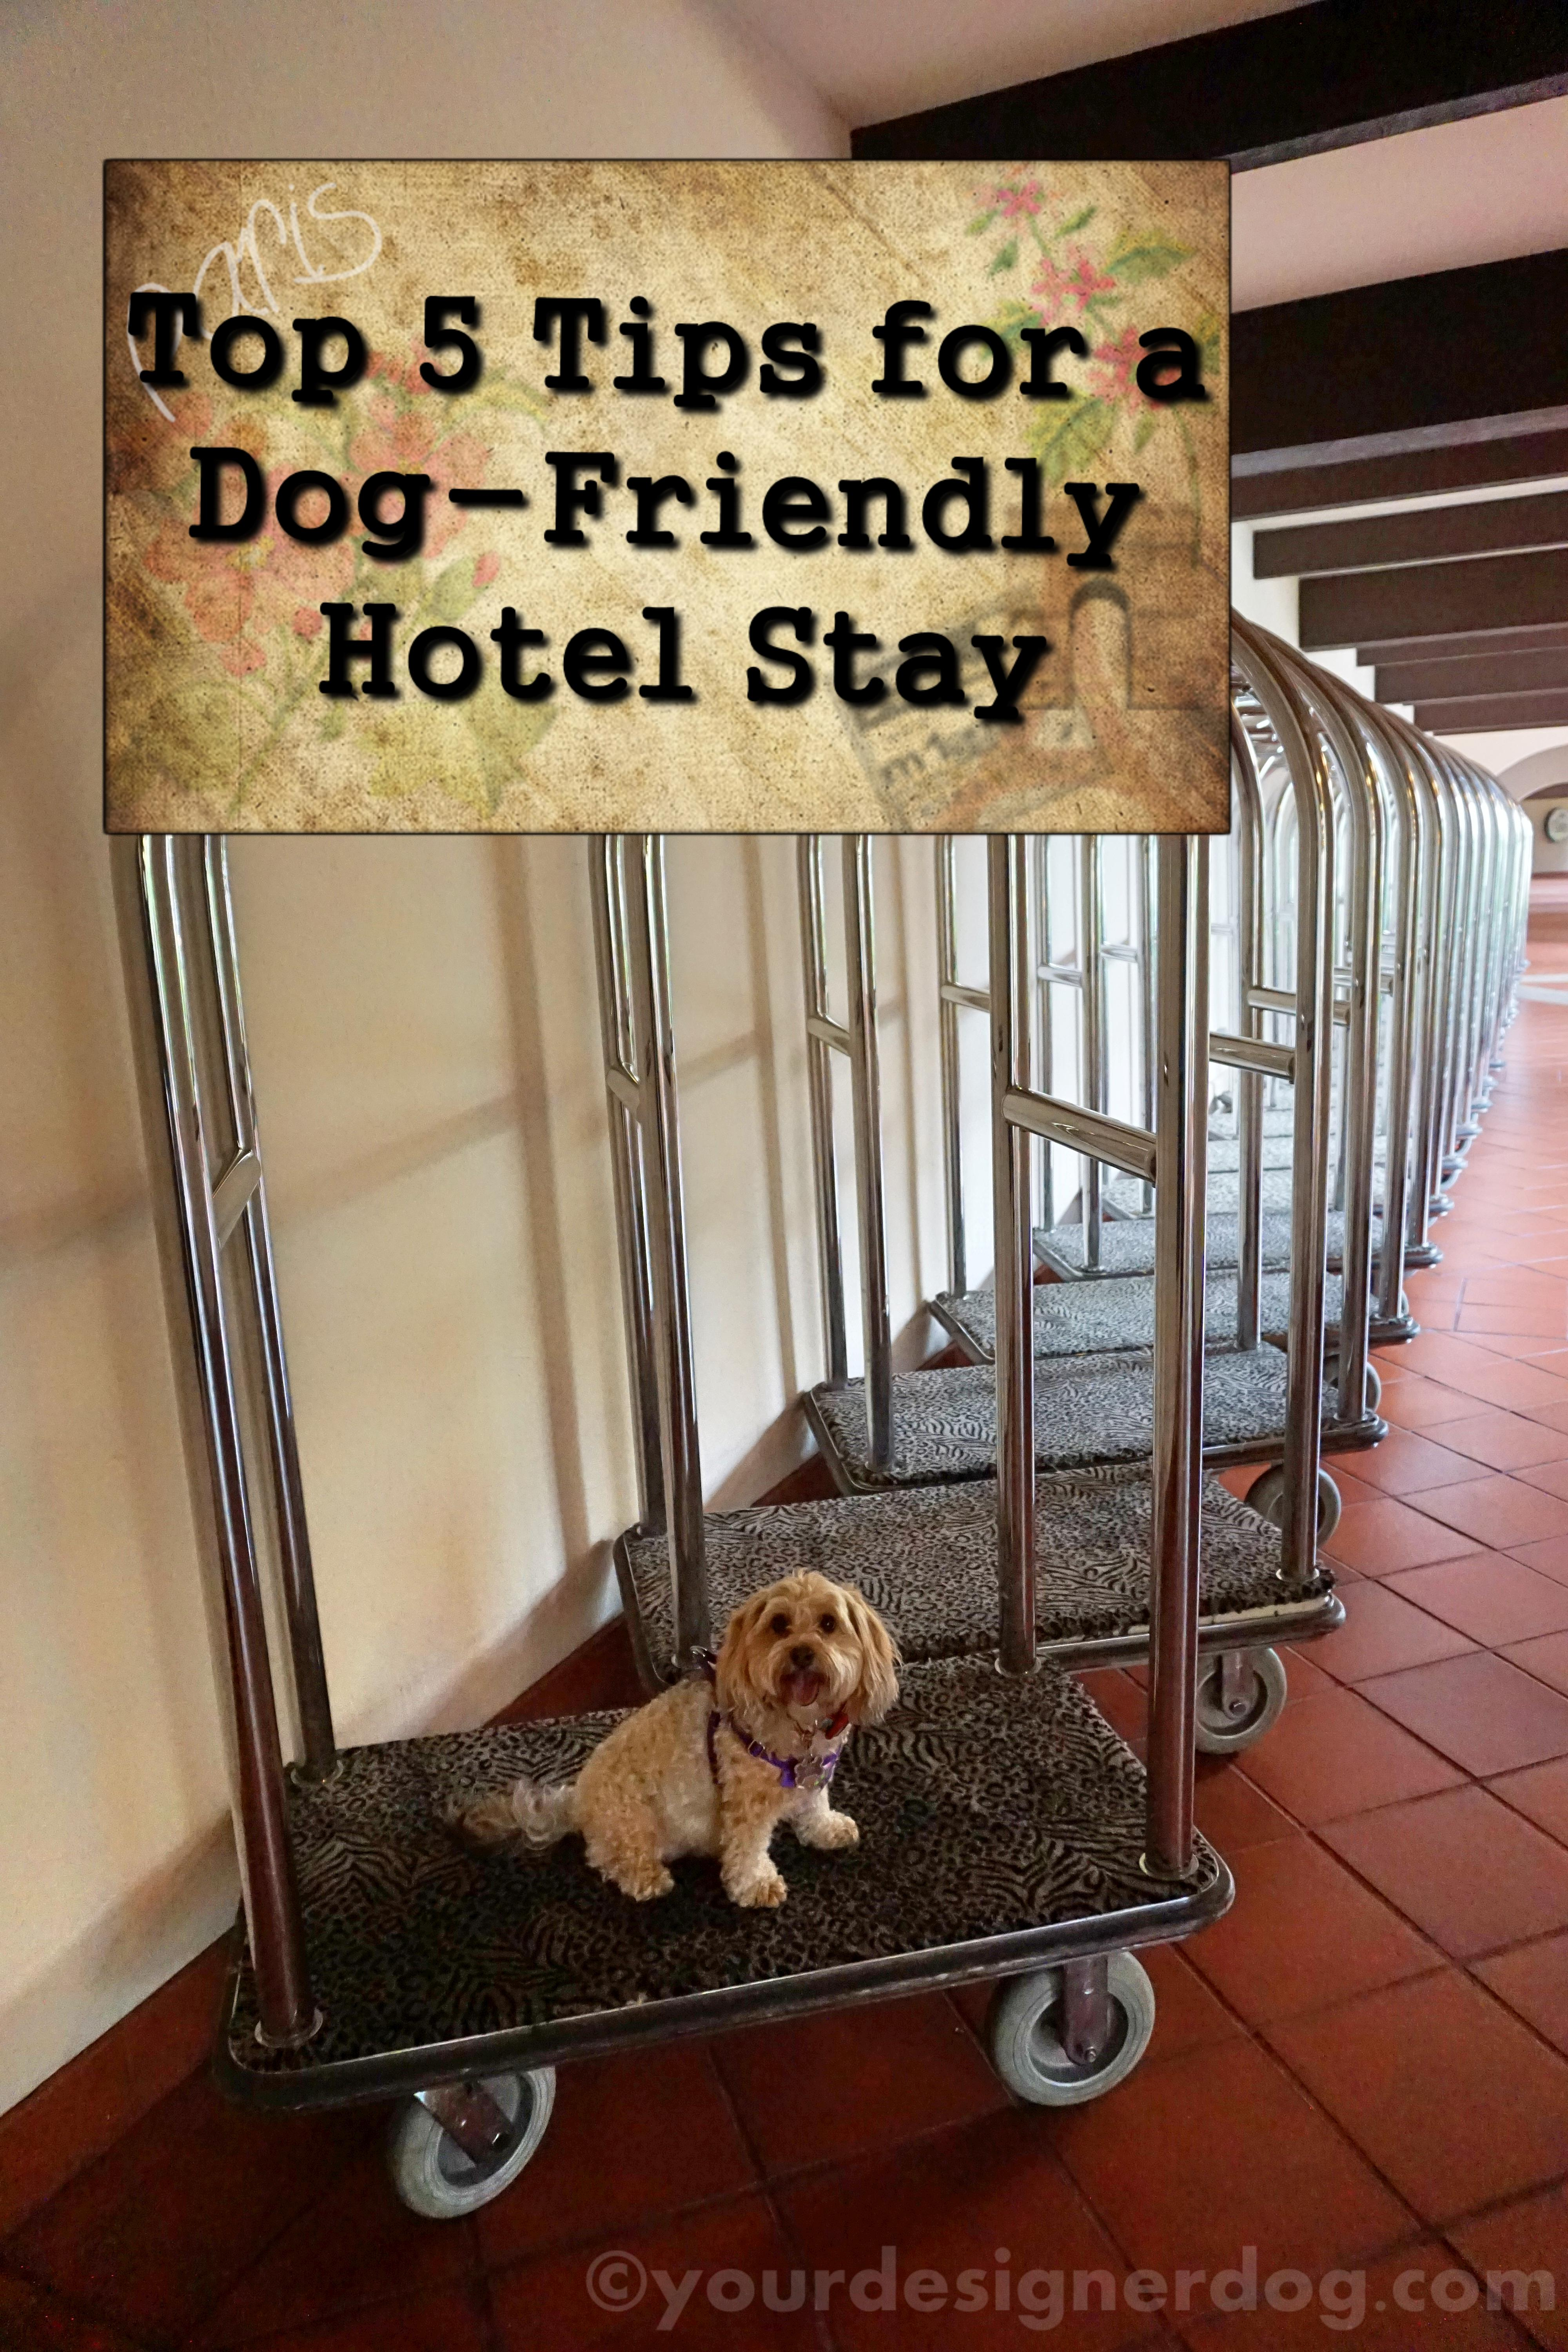 Top 5 Tips for a Dog-Friendly Hotel Stay